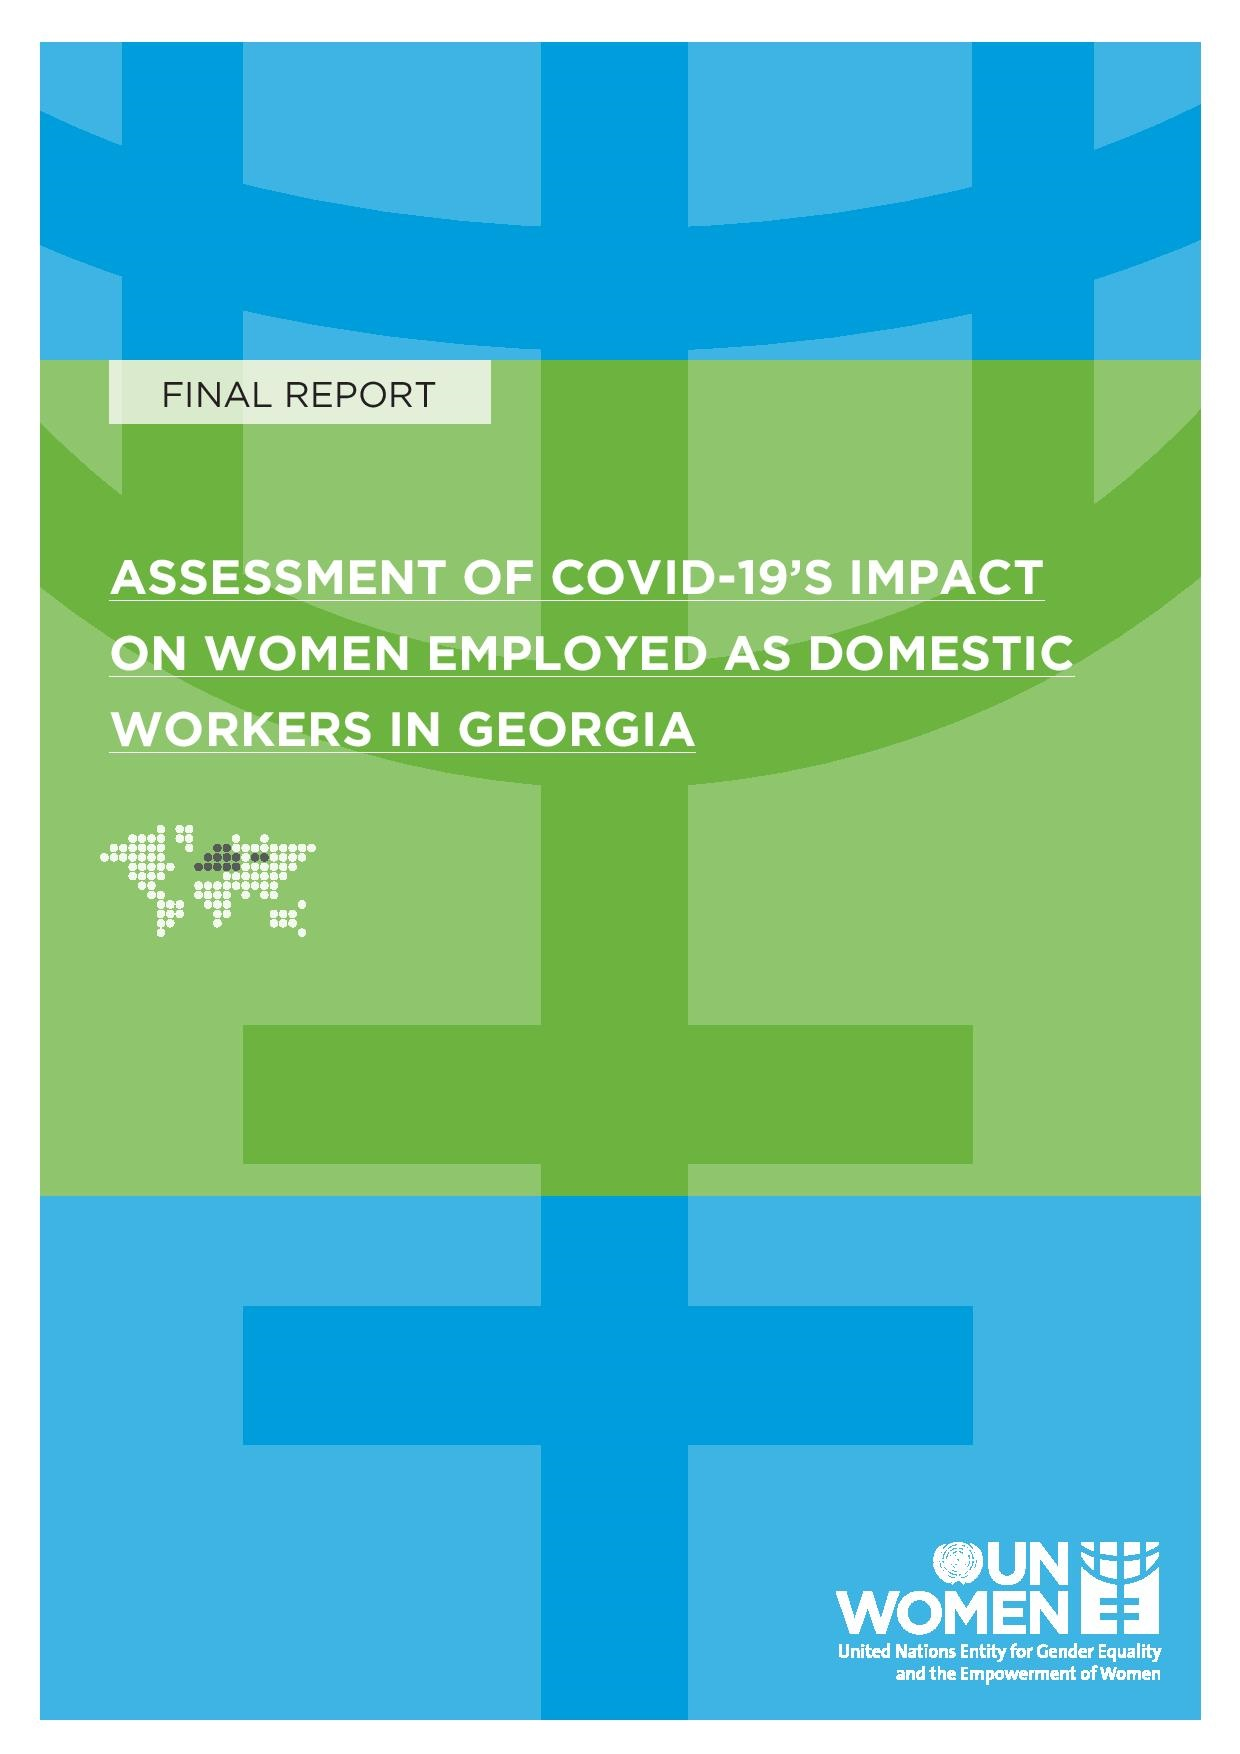 Assessment of COVID-19's Impact on Women Employed as Domestic Workers in Georgia